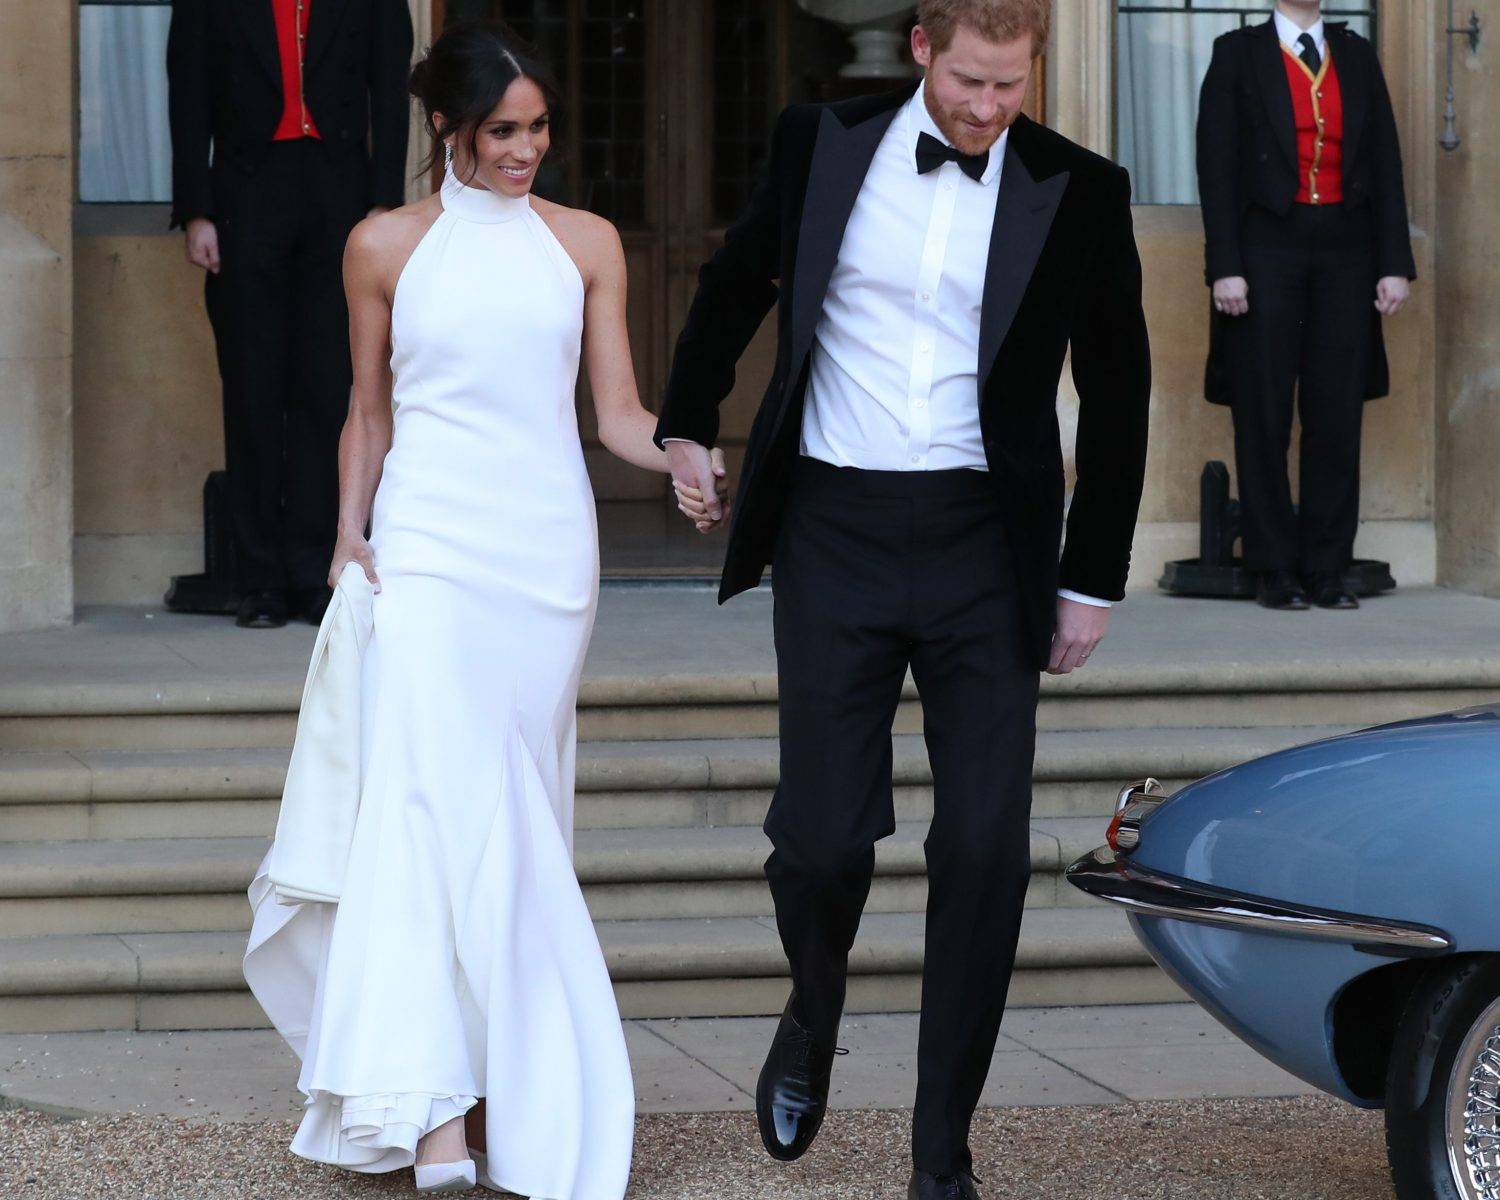 Meghan markle steps out in her second wedding dress for 2nd wedding dress for reception